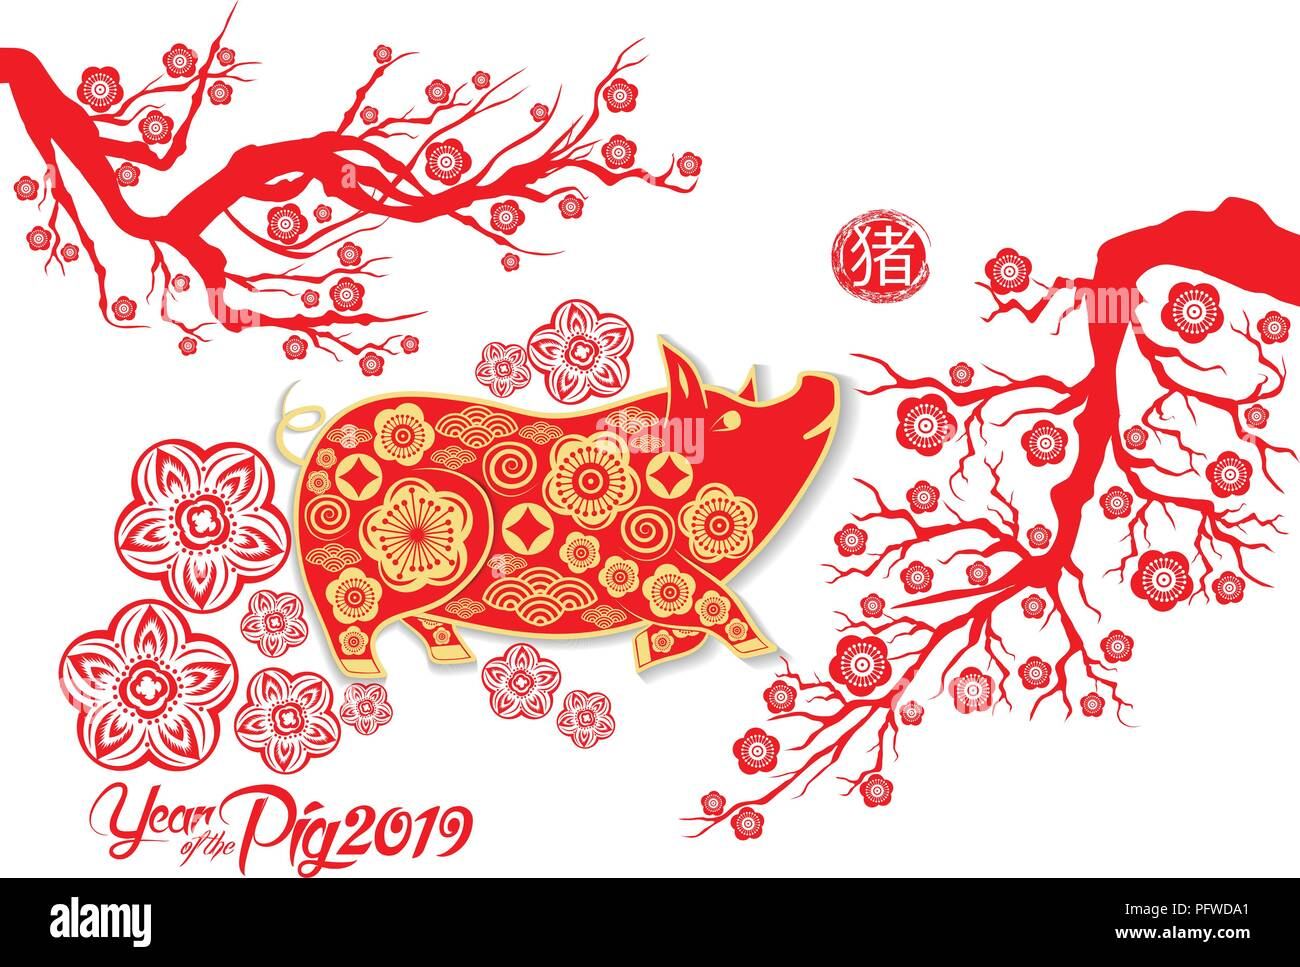 happy chinese new year 2019 card year of pig hieroglyph pig